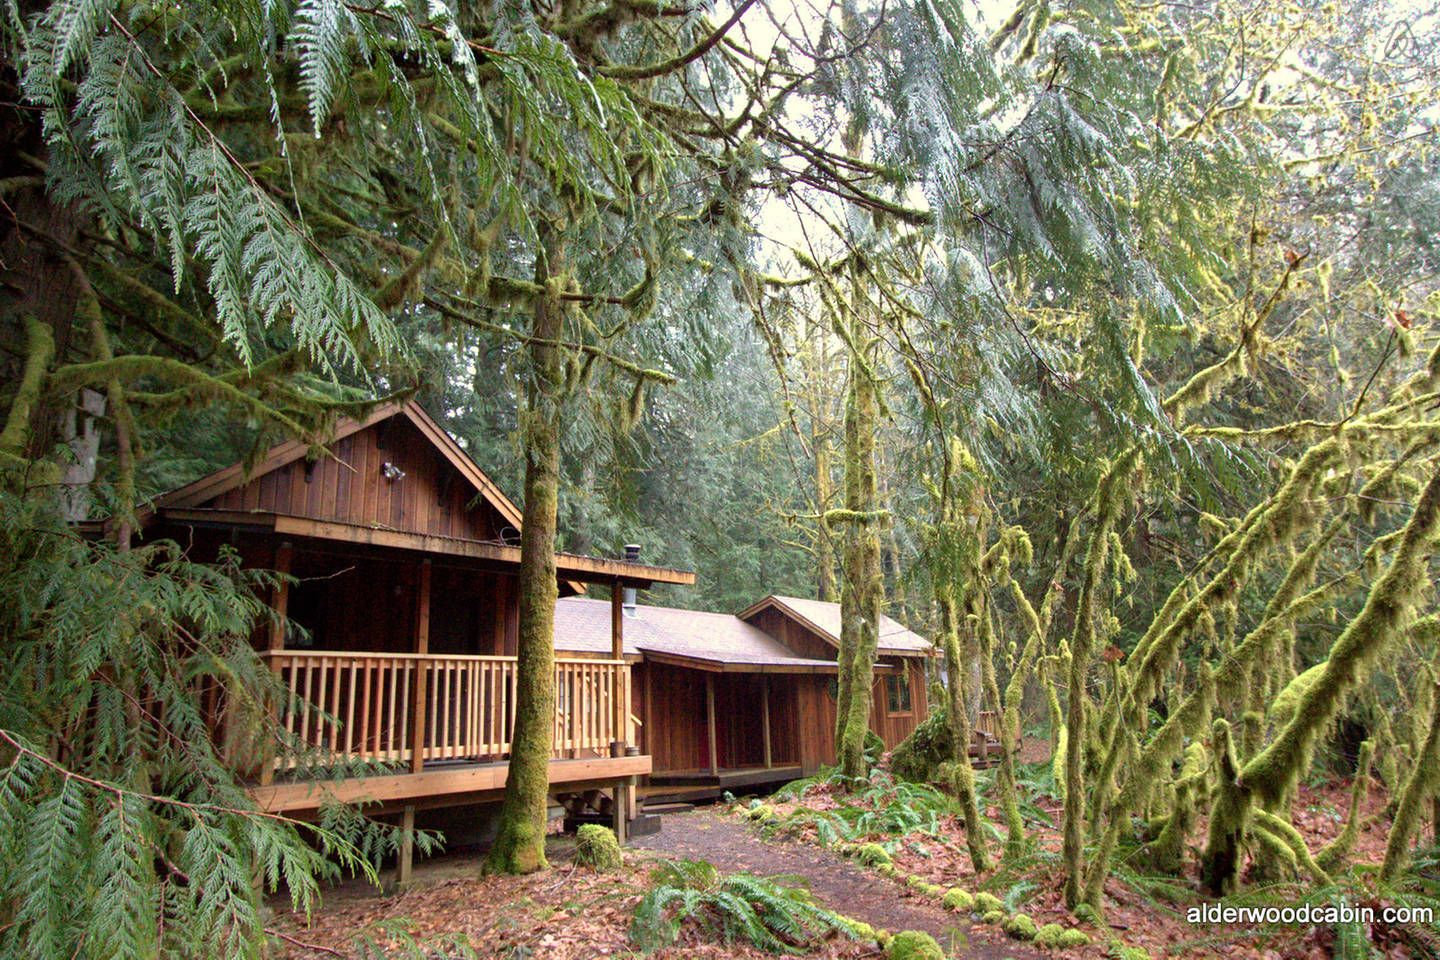 liz leased lot oregon land for sale e t cabins mount hood mt properties warren road